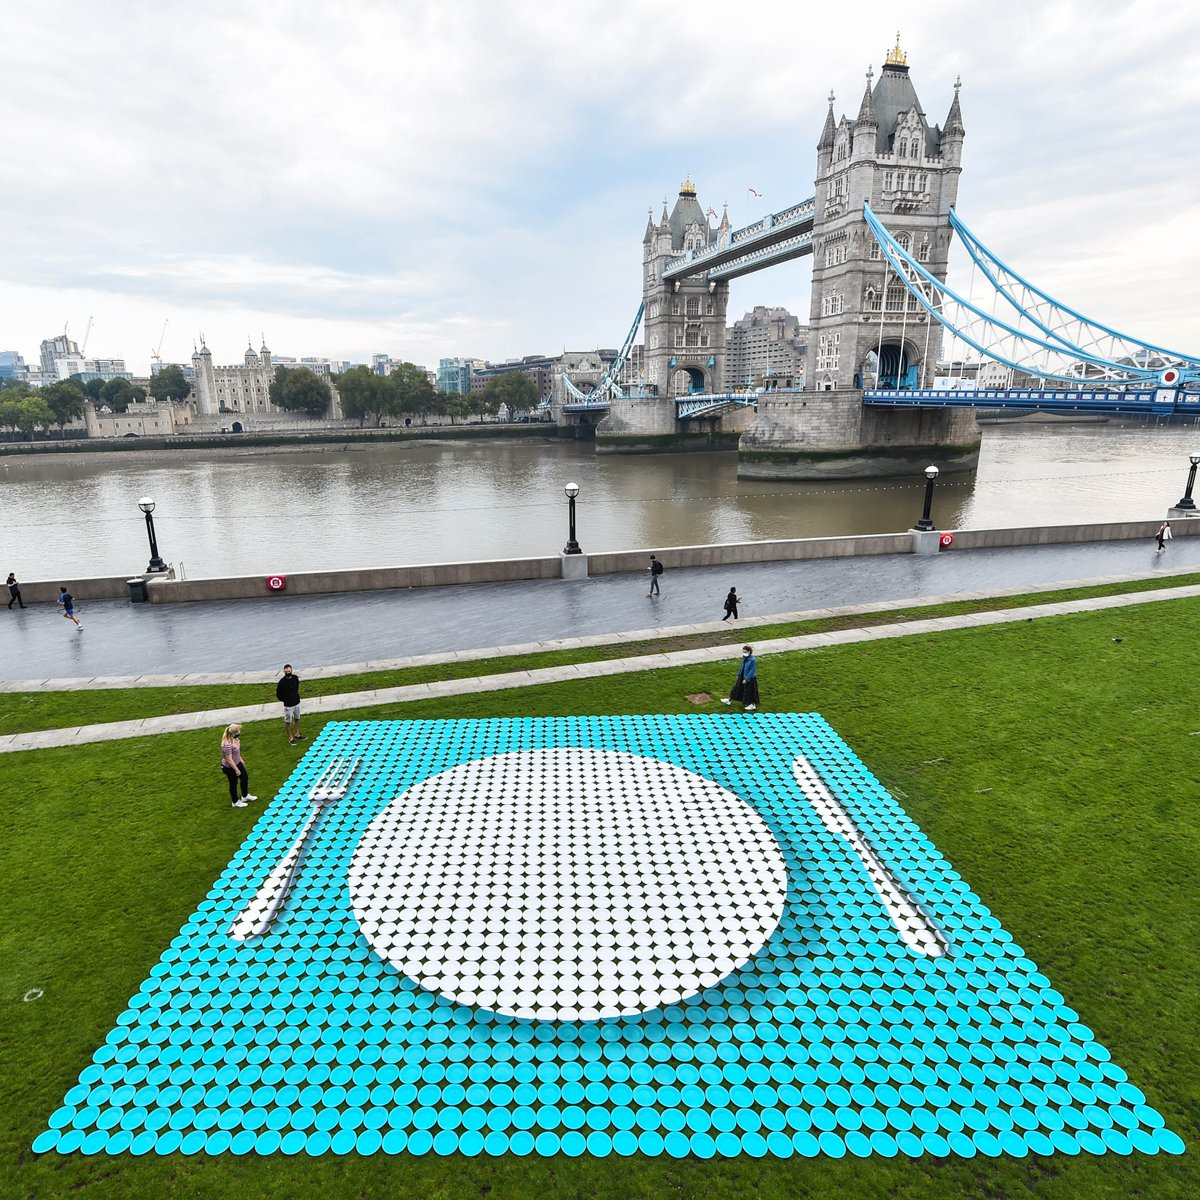 Our Empty Plate installation today in partnership with @HeinzUK 1,800 empty plates representing the 1.8 million school age children in the UK at risk of starting the day too hungry to learn. #SilencetheRumble #Nochildtoohungrytolearn #EndChildFoodPoverty